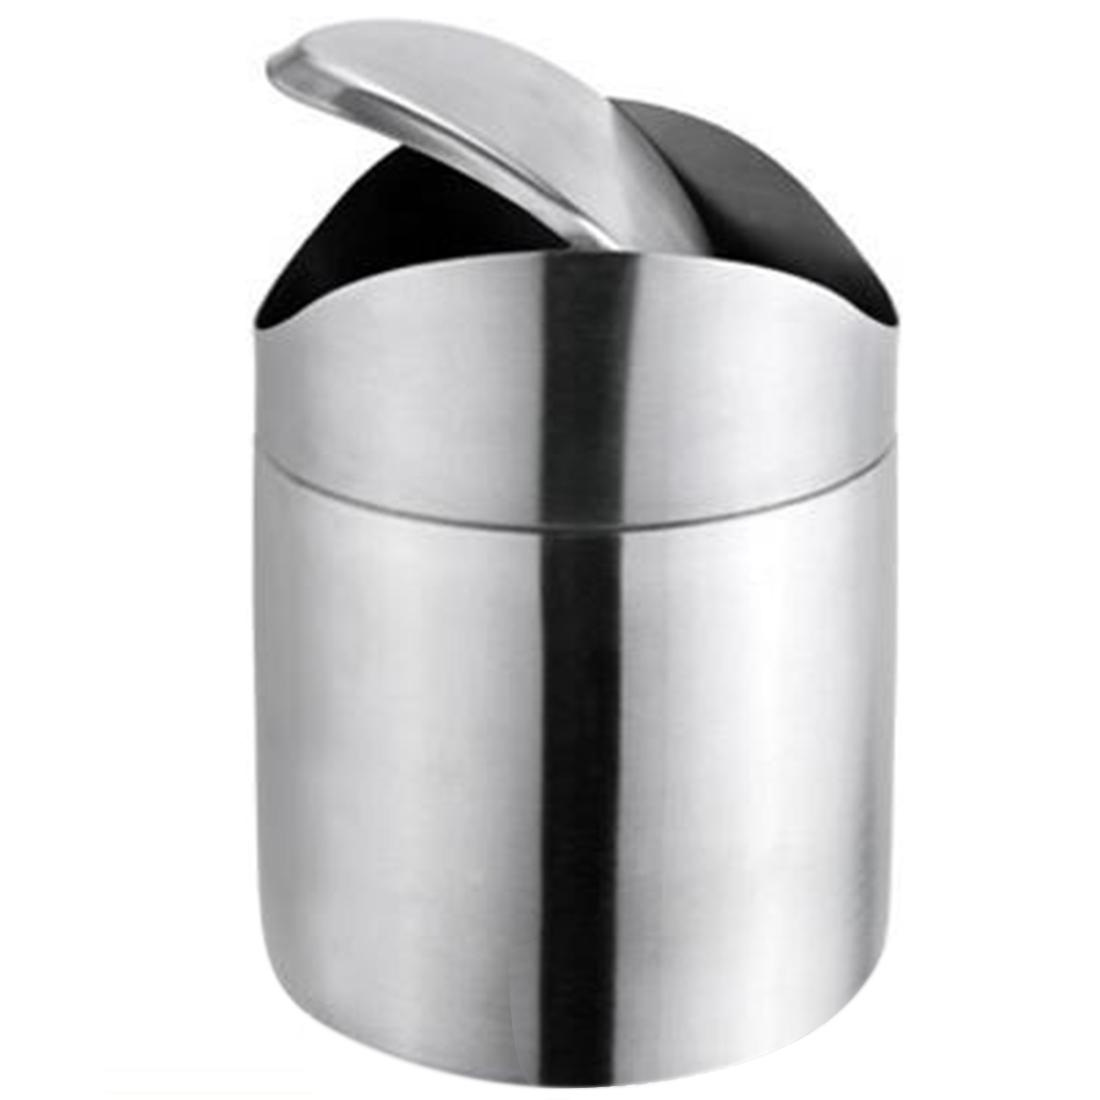 Silver Trash Cans Silver Trash Cans With Lids Home Decorating Ideas